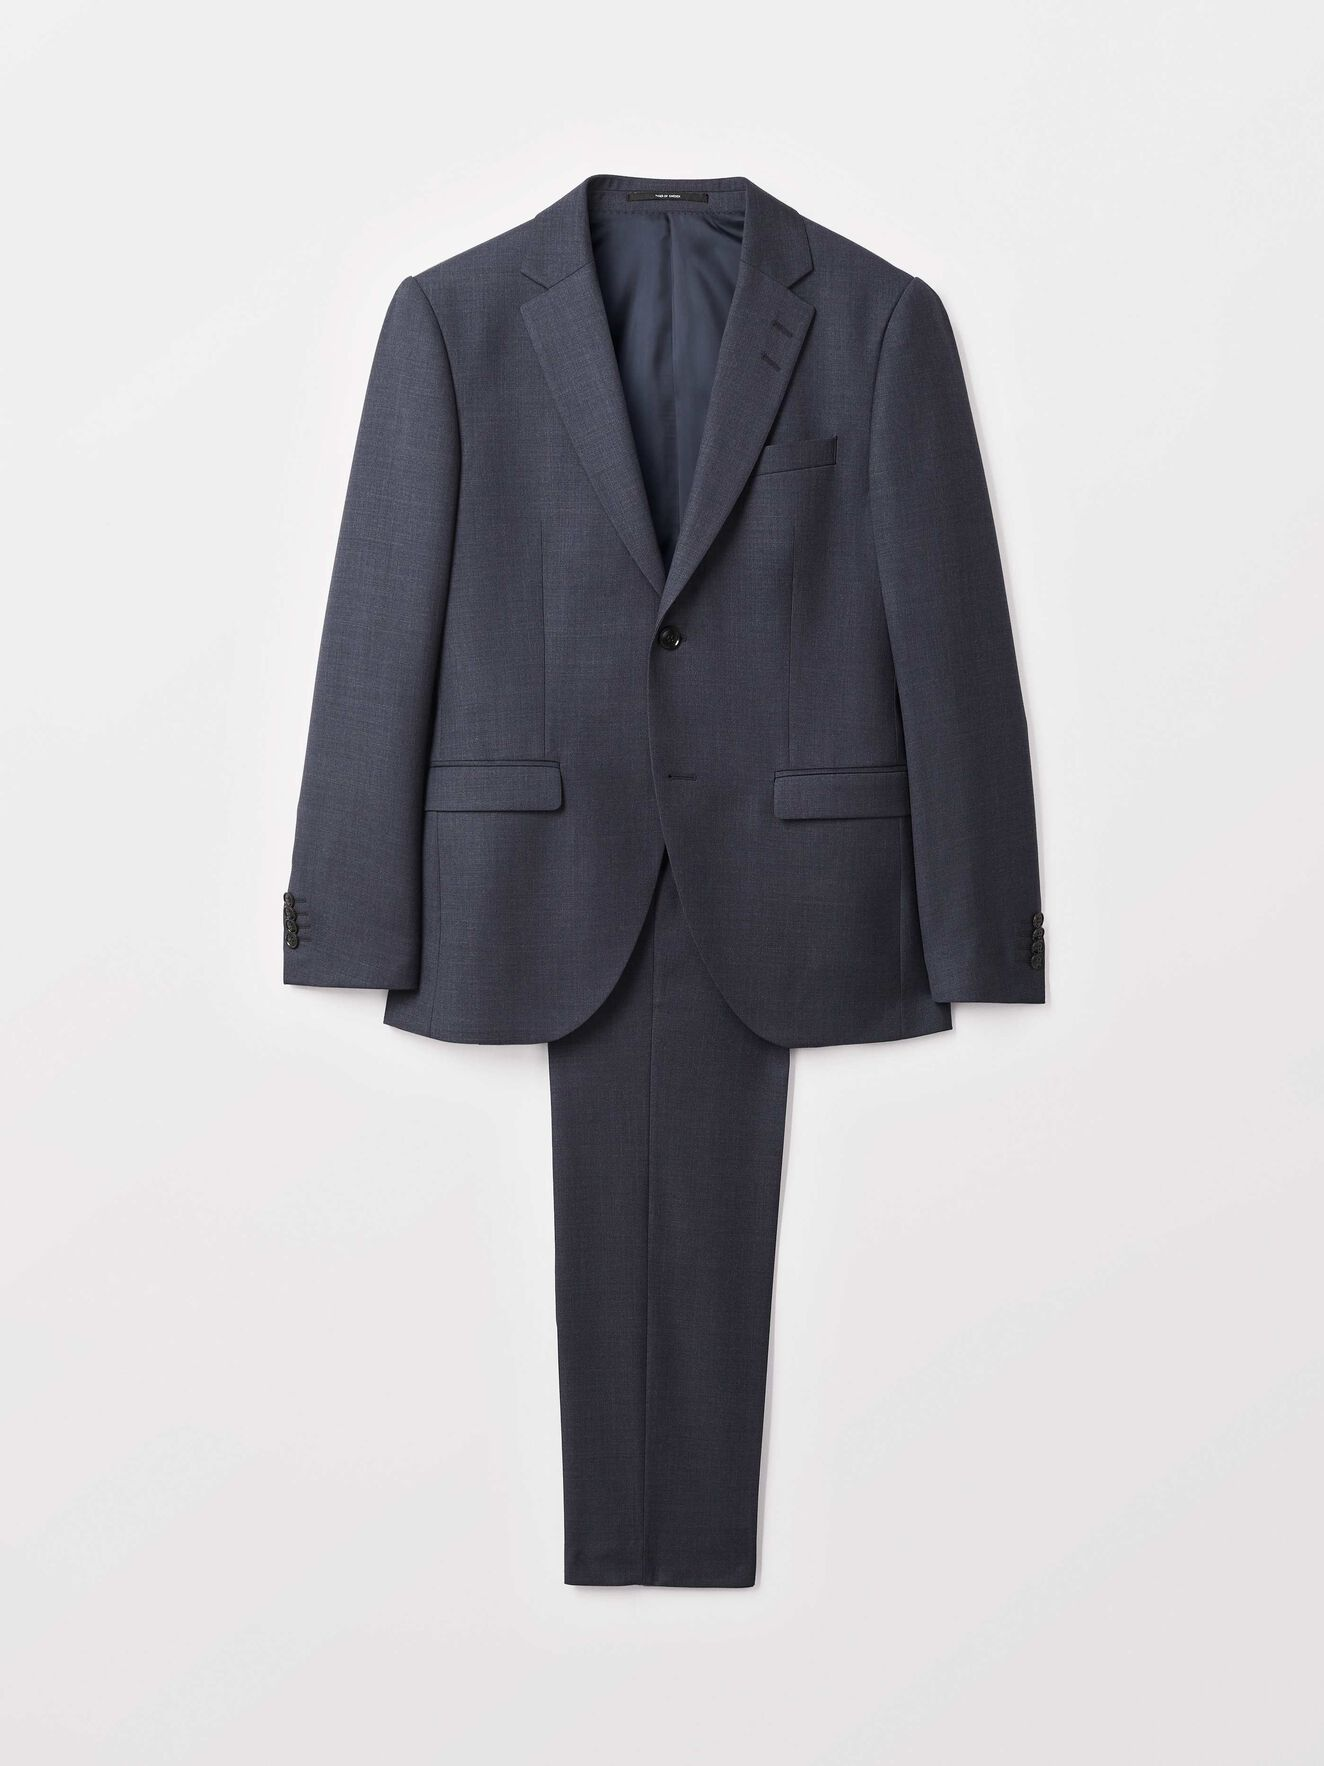 S.Jamonte Suit in Mist Blue from Tiger of Sweden